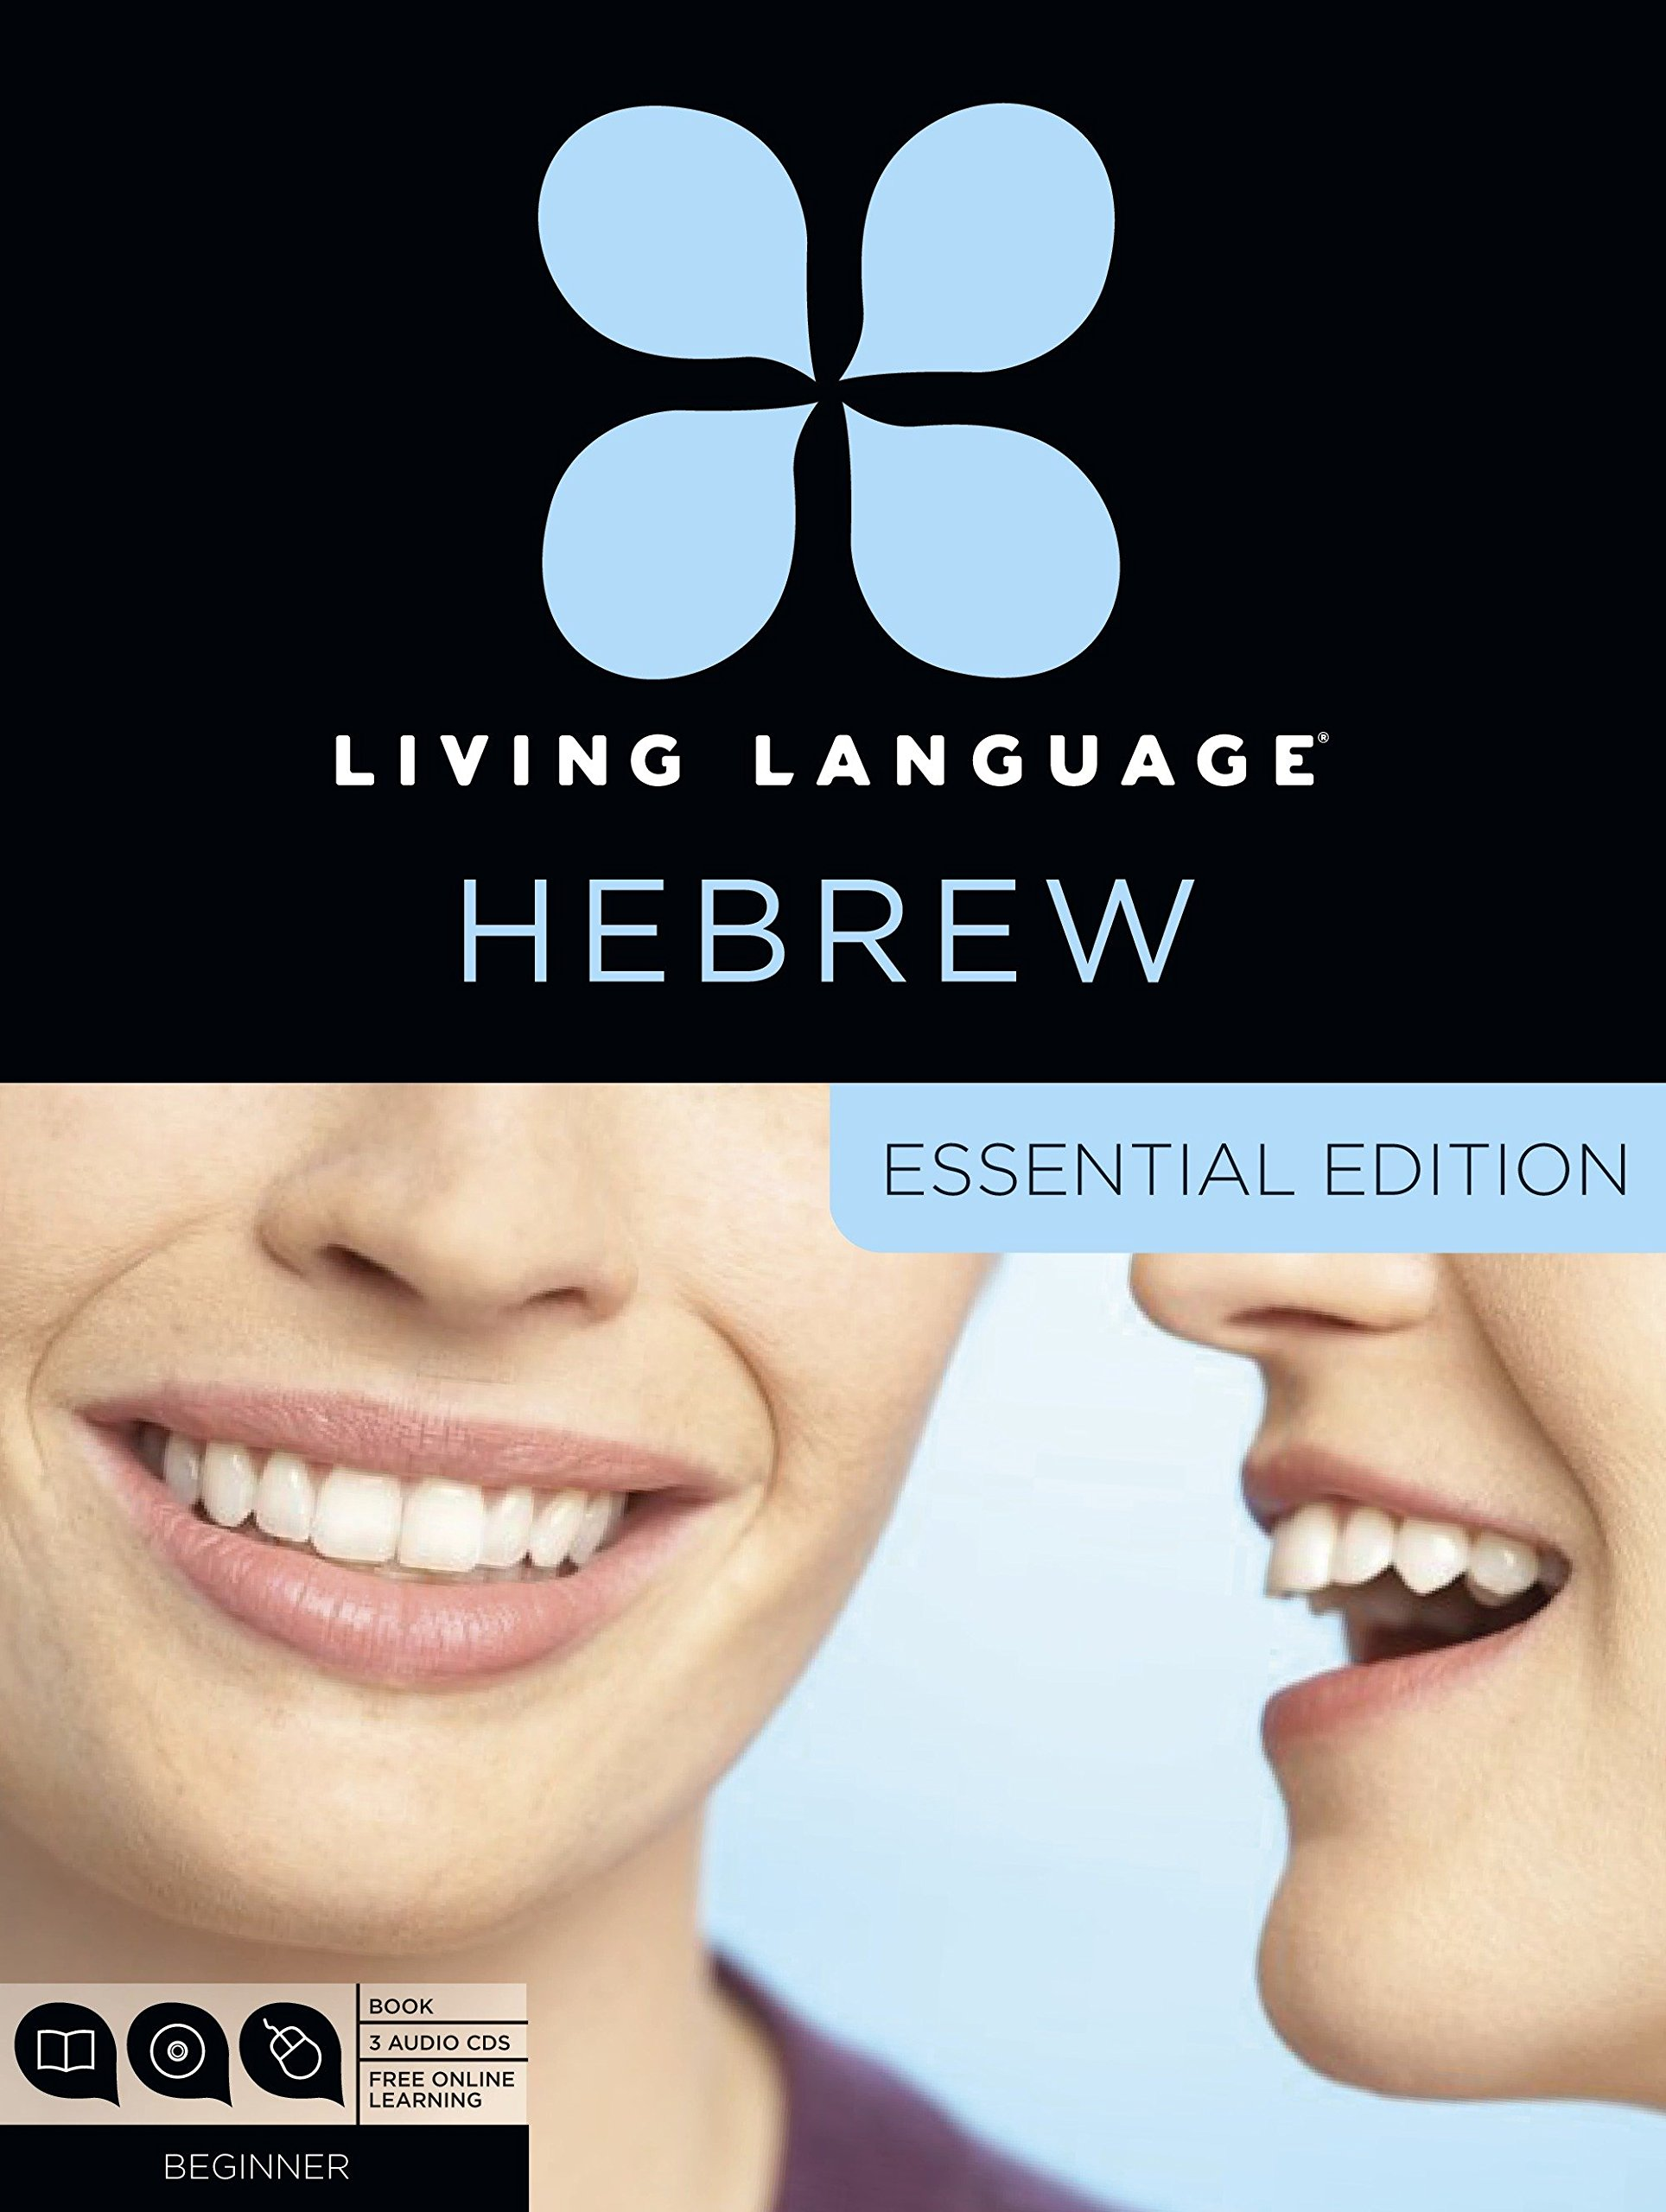 Living Language Hebrew, Essential Edition: Beginner course, including coursebook, 3 audio CDs, and free online learning